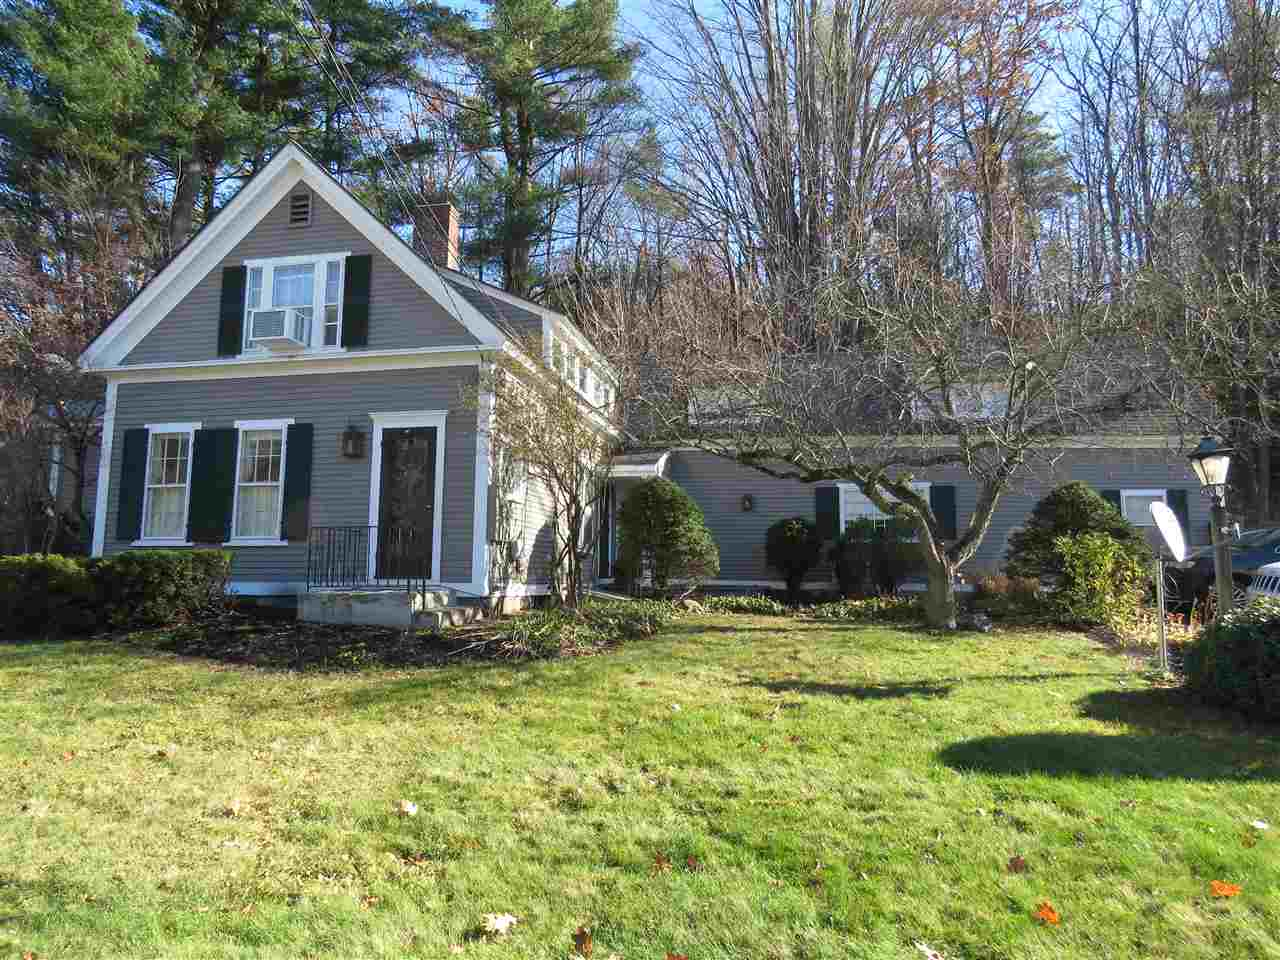 Bungalow,Cape,Craftsman, Multi-Family - Peterborough, NH (photo 1)